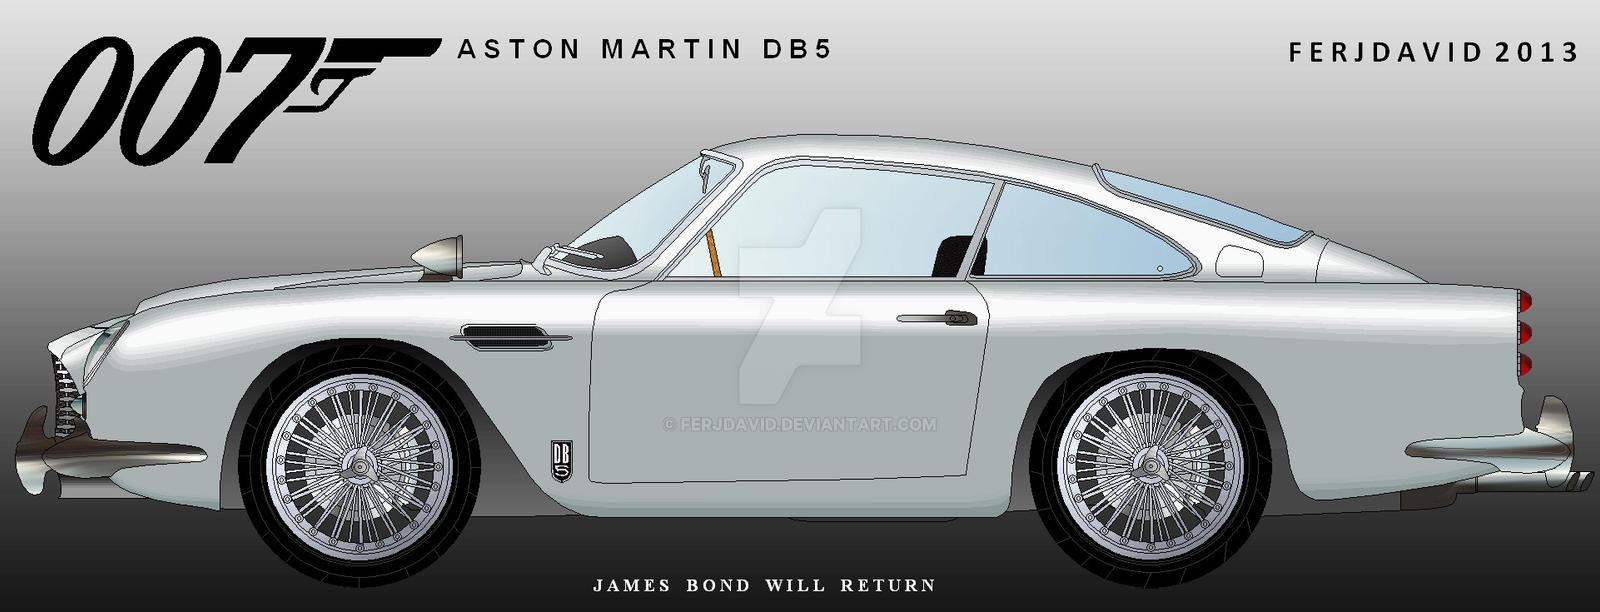 James Bond 007 Sean Connery Aston Martin Db5 By Ferjdavid On Deviantart